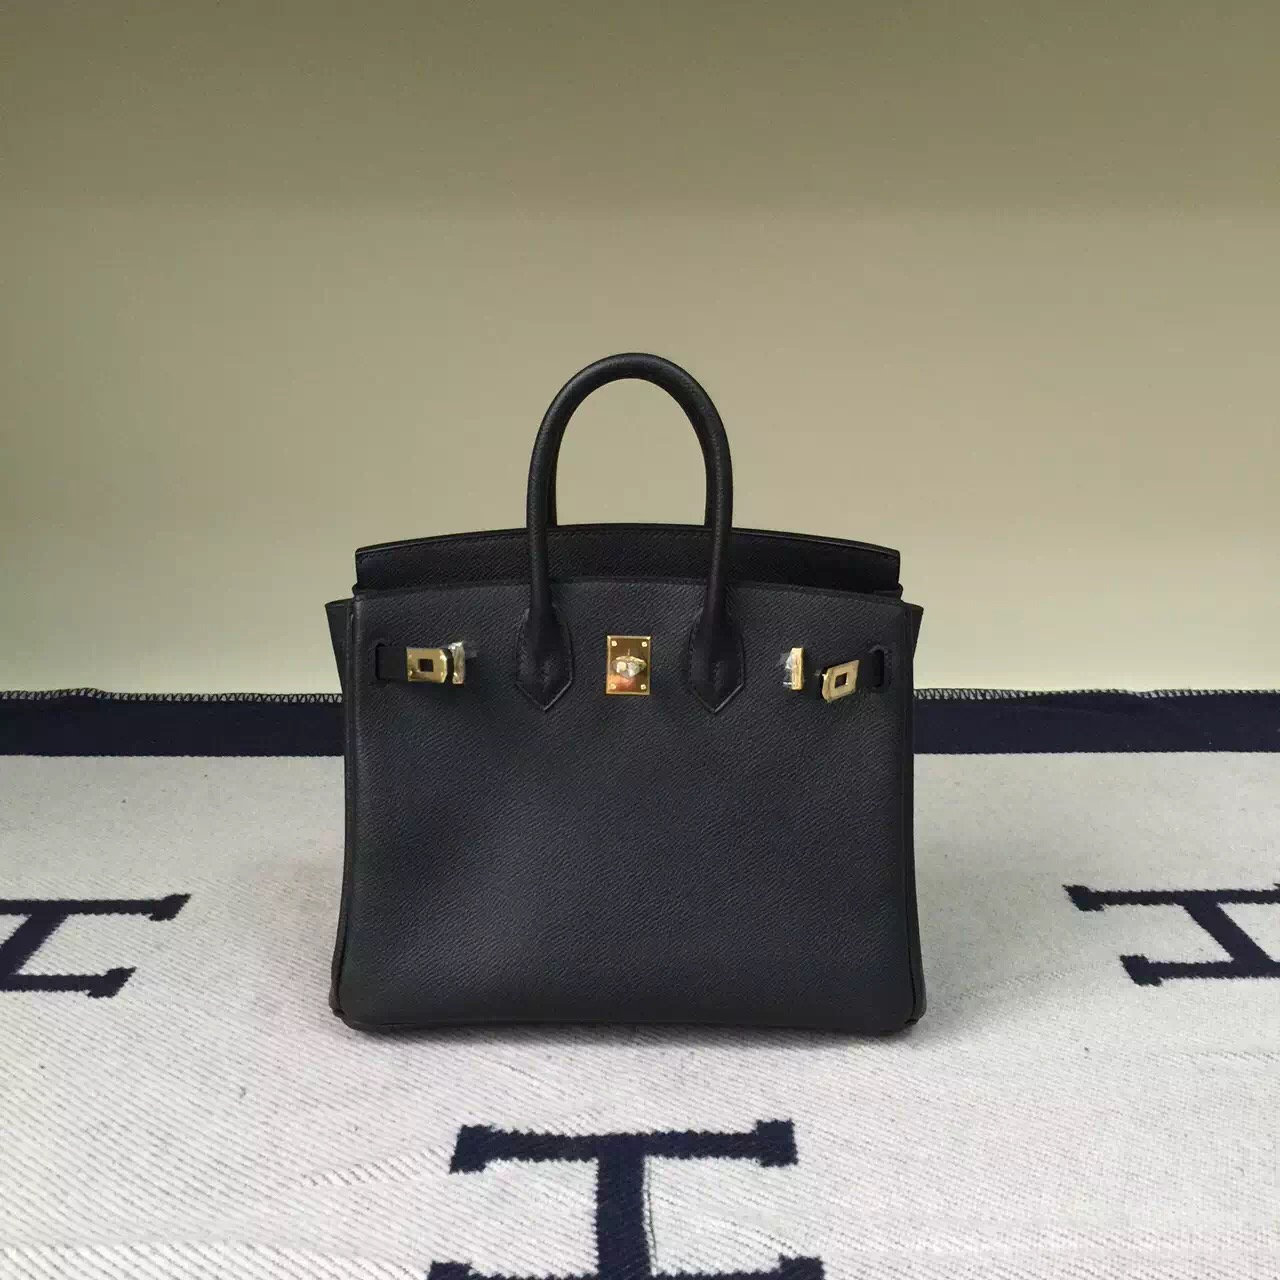 Hermes Classic Bag CK89 Black Epsom Leather Birkin25cm Bag